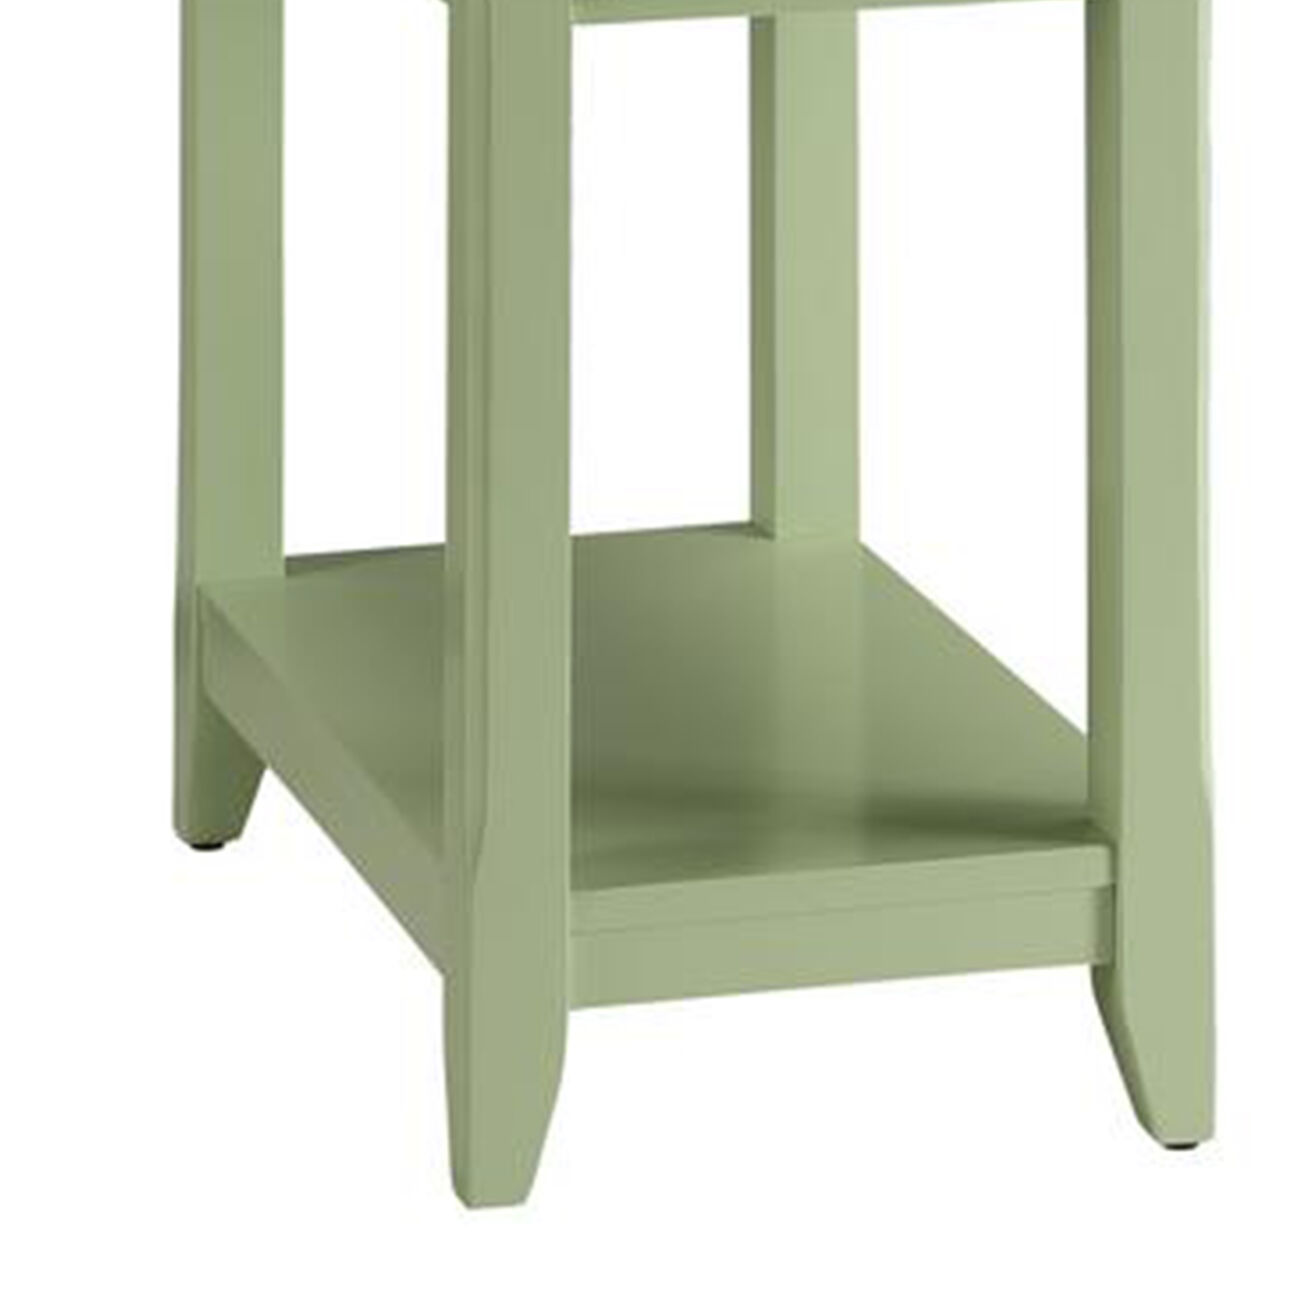 Amiable Side Table, Light Green